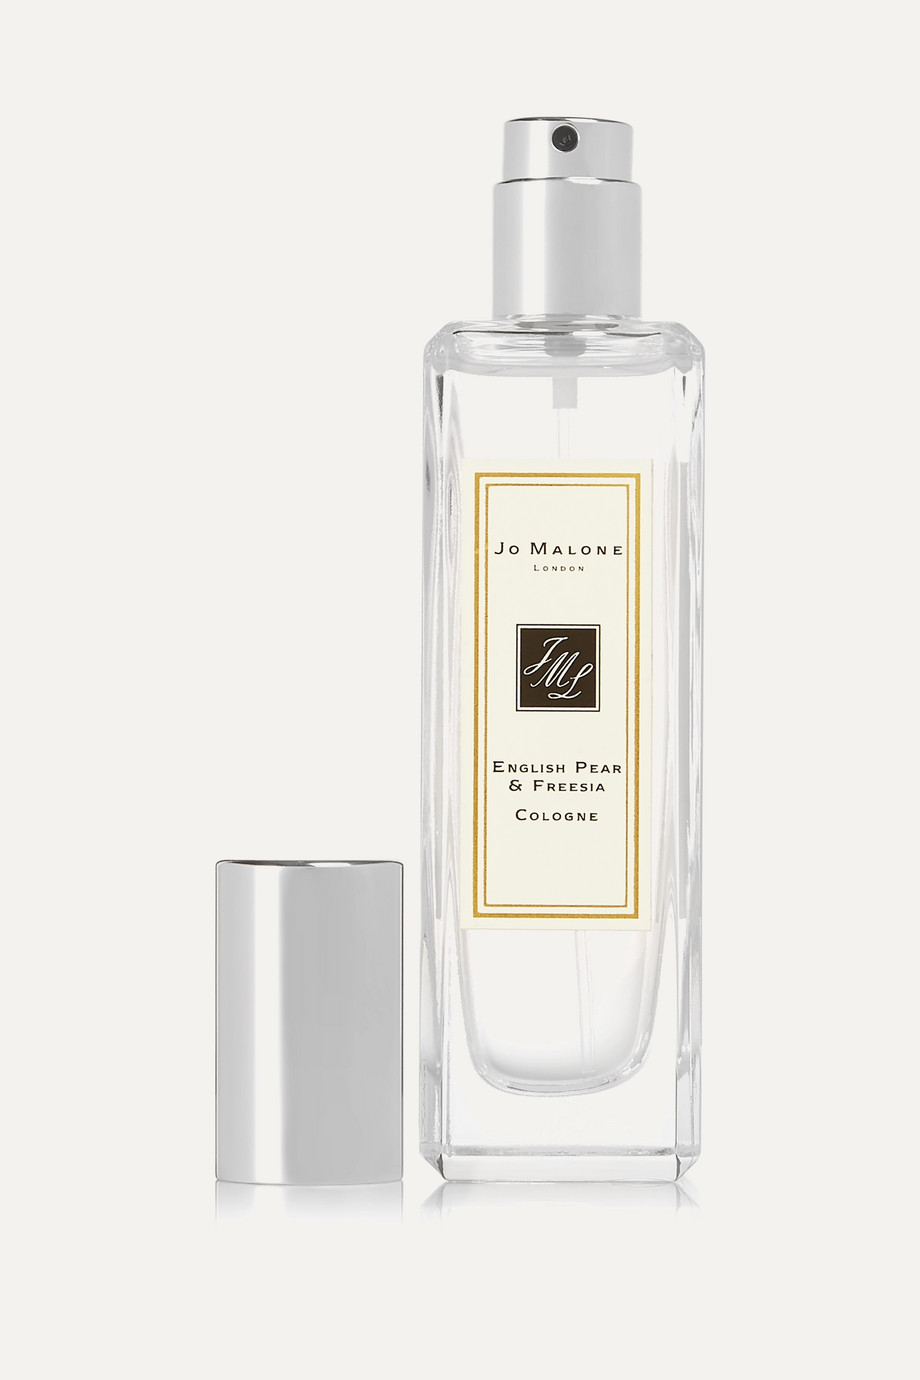 Jo Malone London English Pear & Freesia, 30 ml – Eau de Cologne